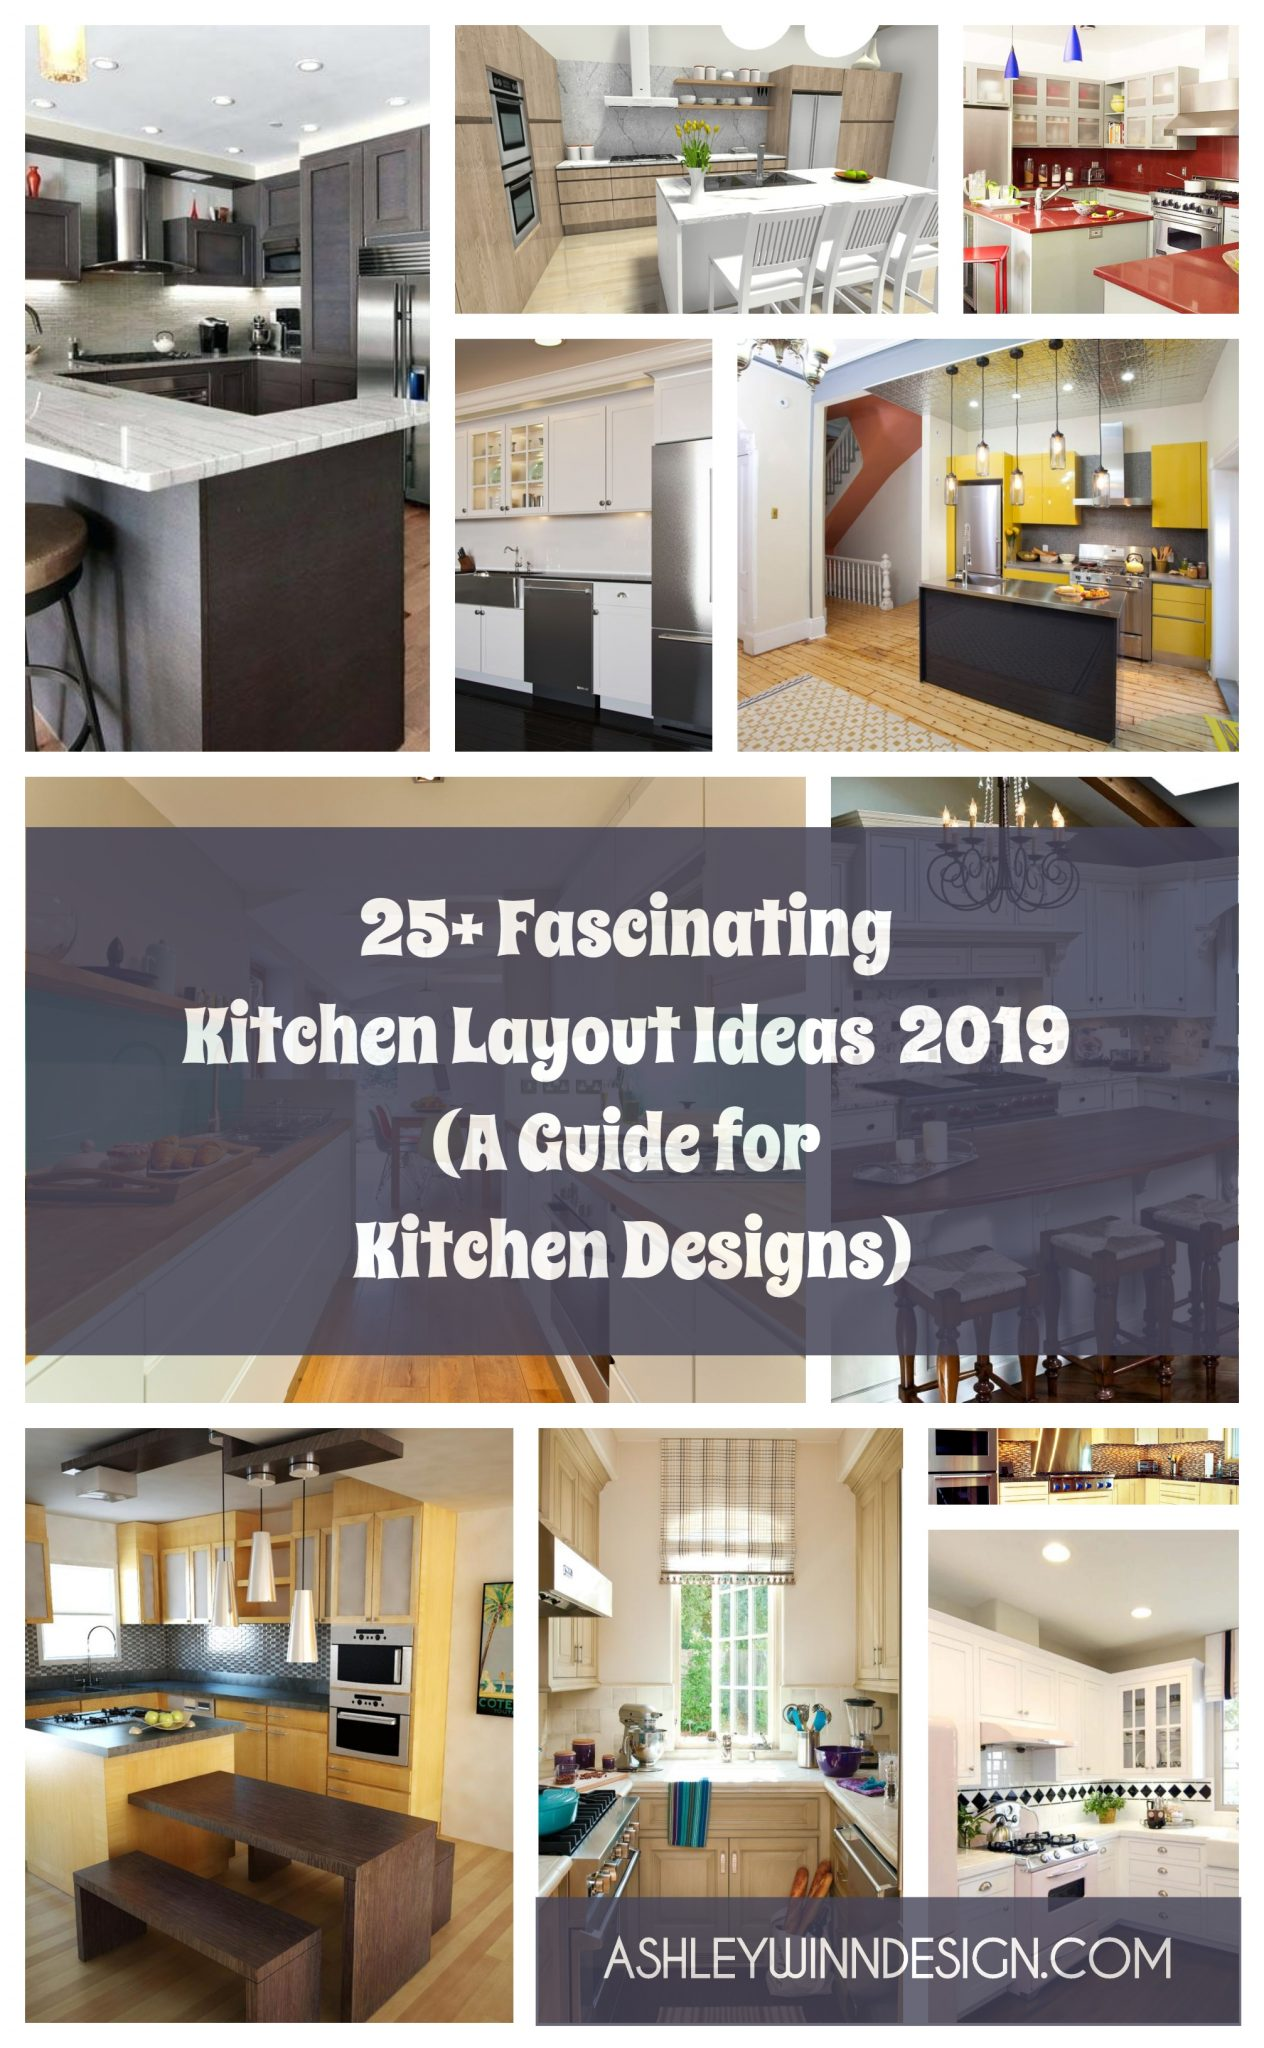 25 Fascinating Kitchen Layout Ideas 2021 A Guide For Kitchen Designs